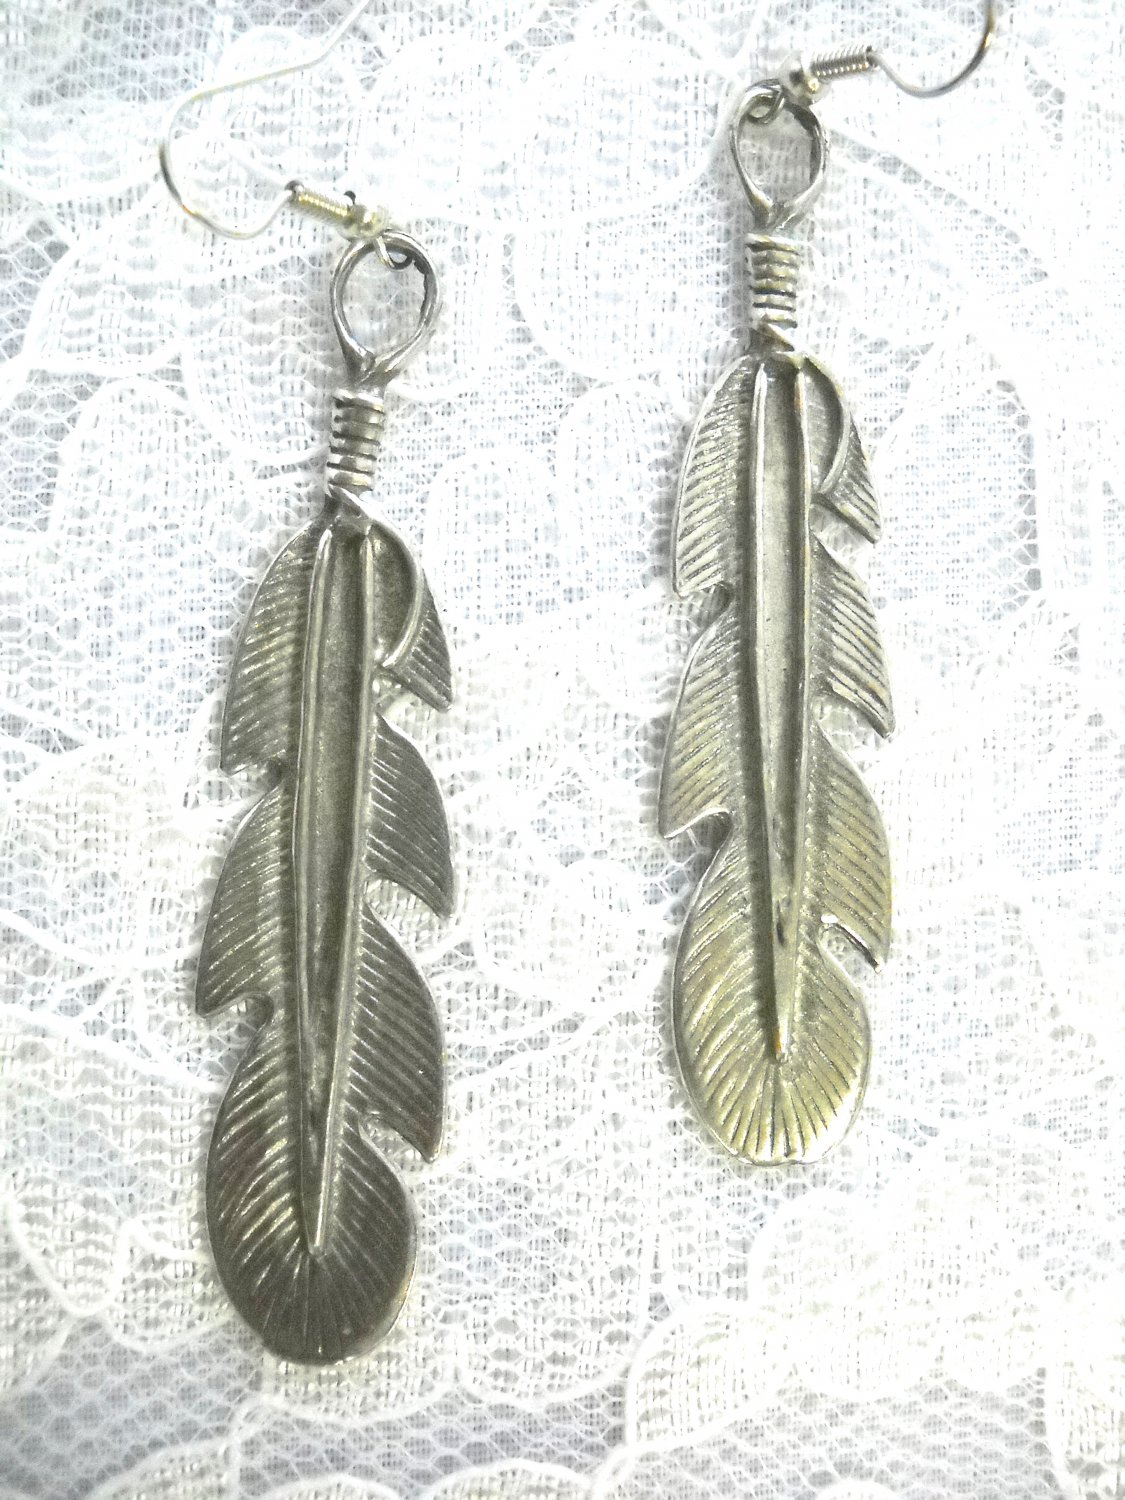 NATIVE STYLE XL EAGLE FEATHER USA PEWTER FULL PENDANT SZ EARRINGS